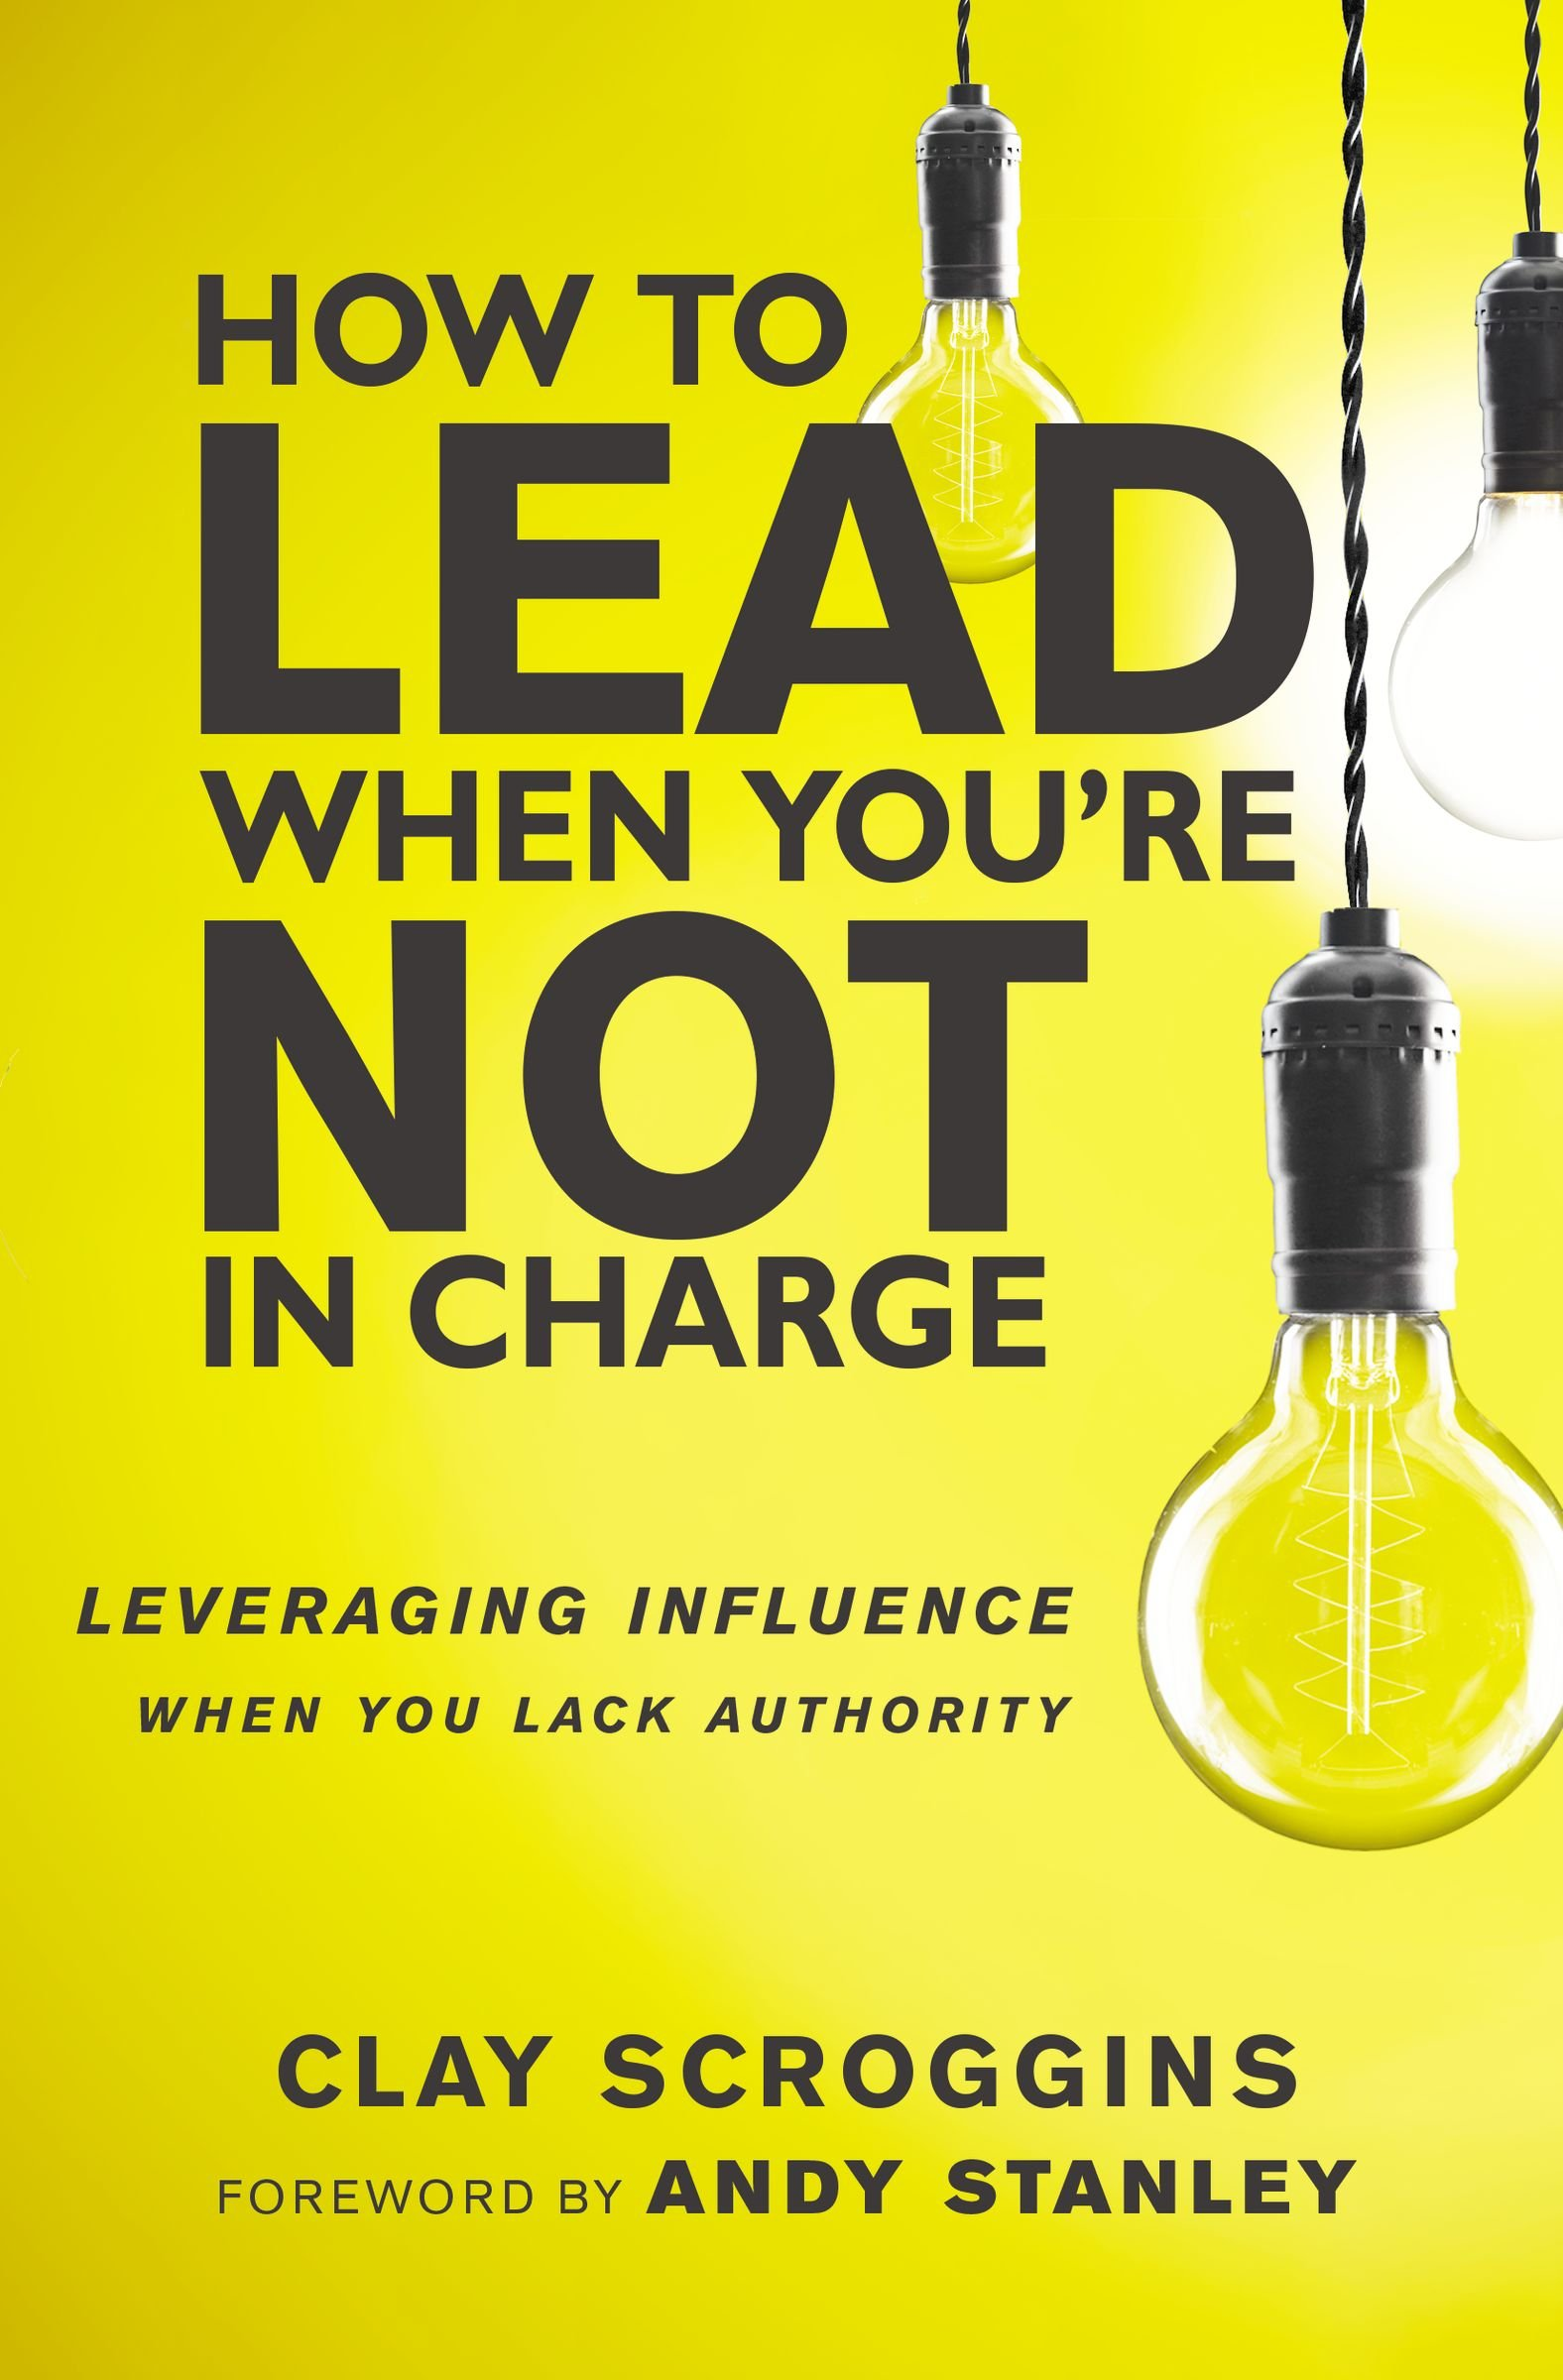 How to Lead When You're Not in Charge Clay Scroggins  notes by Kingston S. Lim